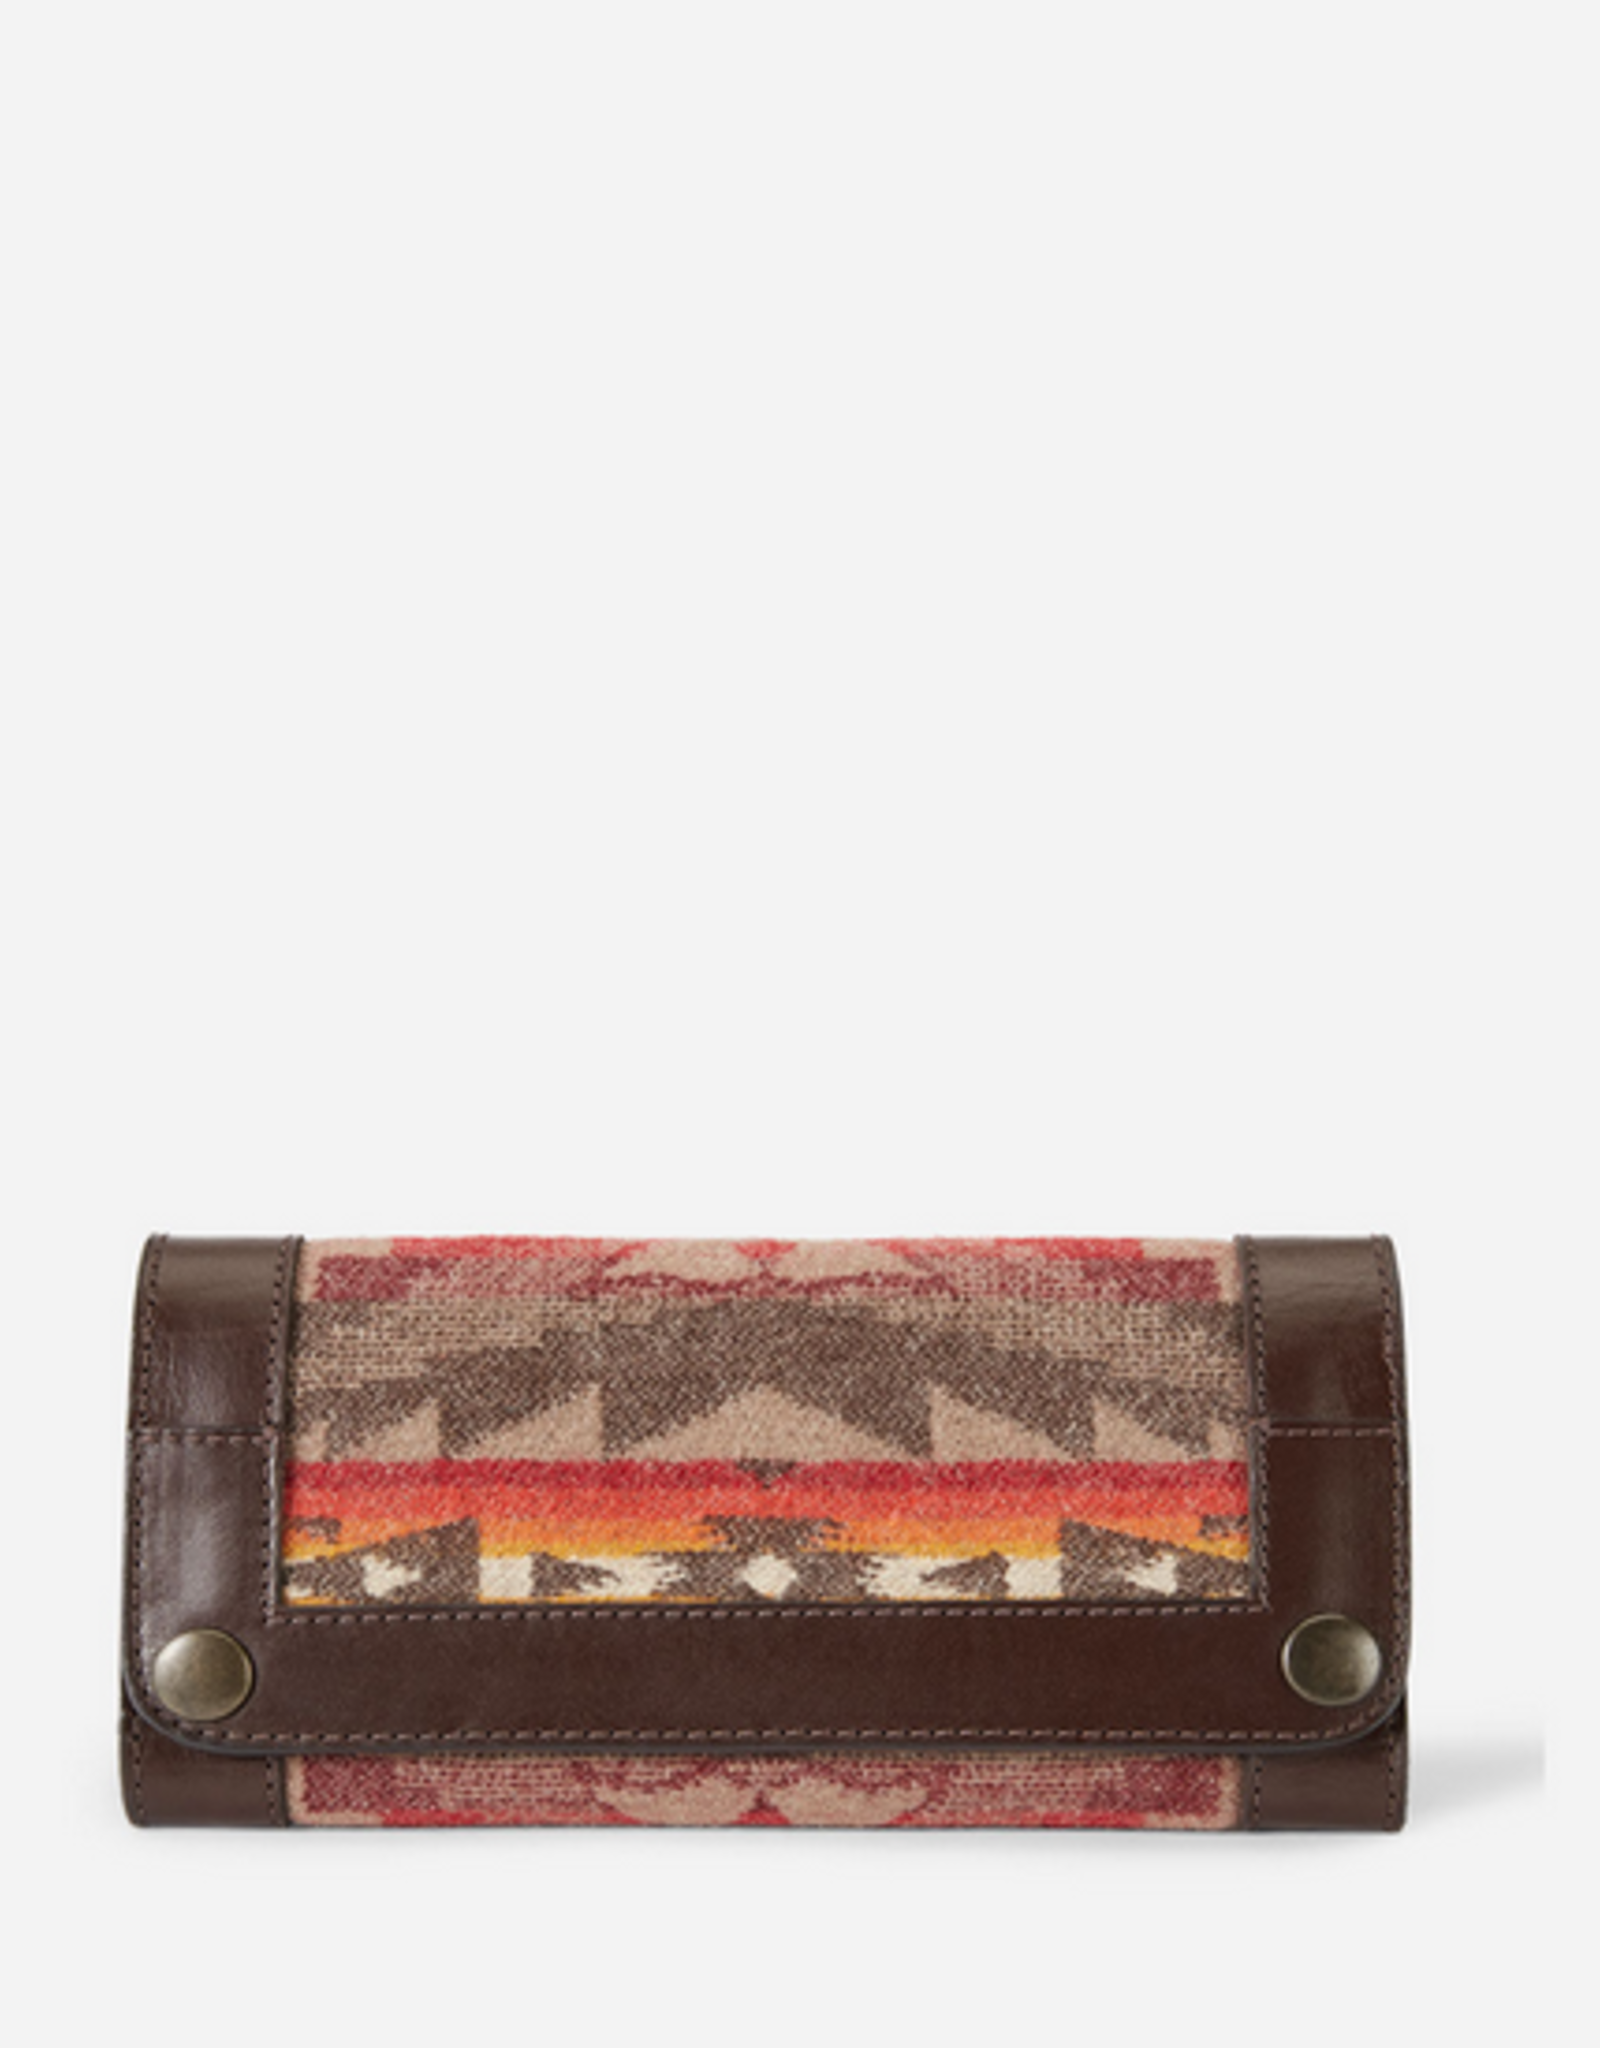 PENDLETON WALLET TRADE SIERRA RIDGE TAN